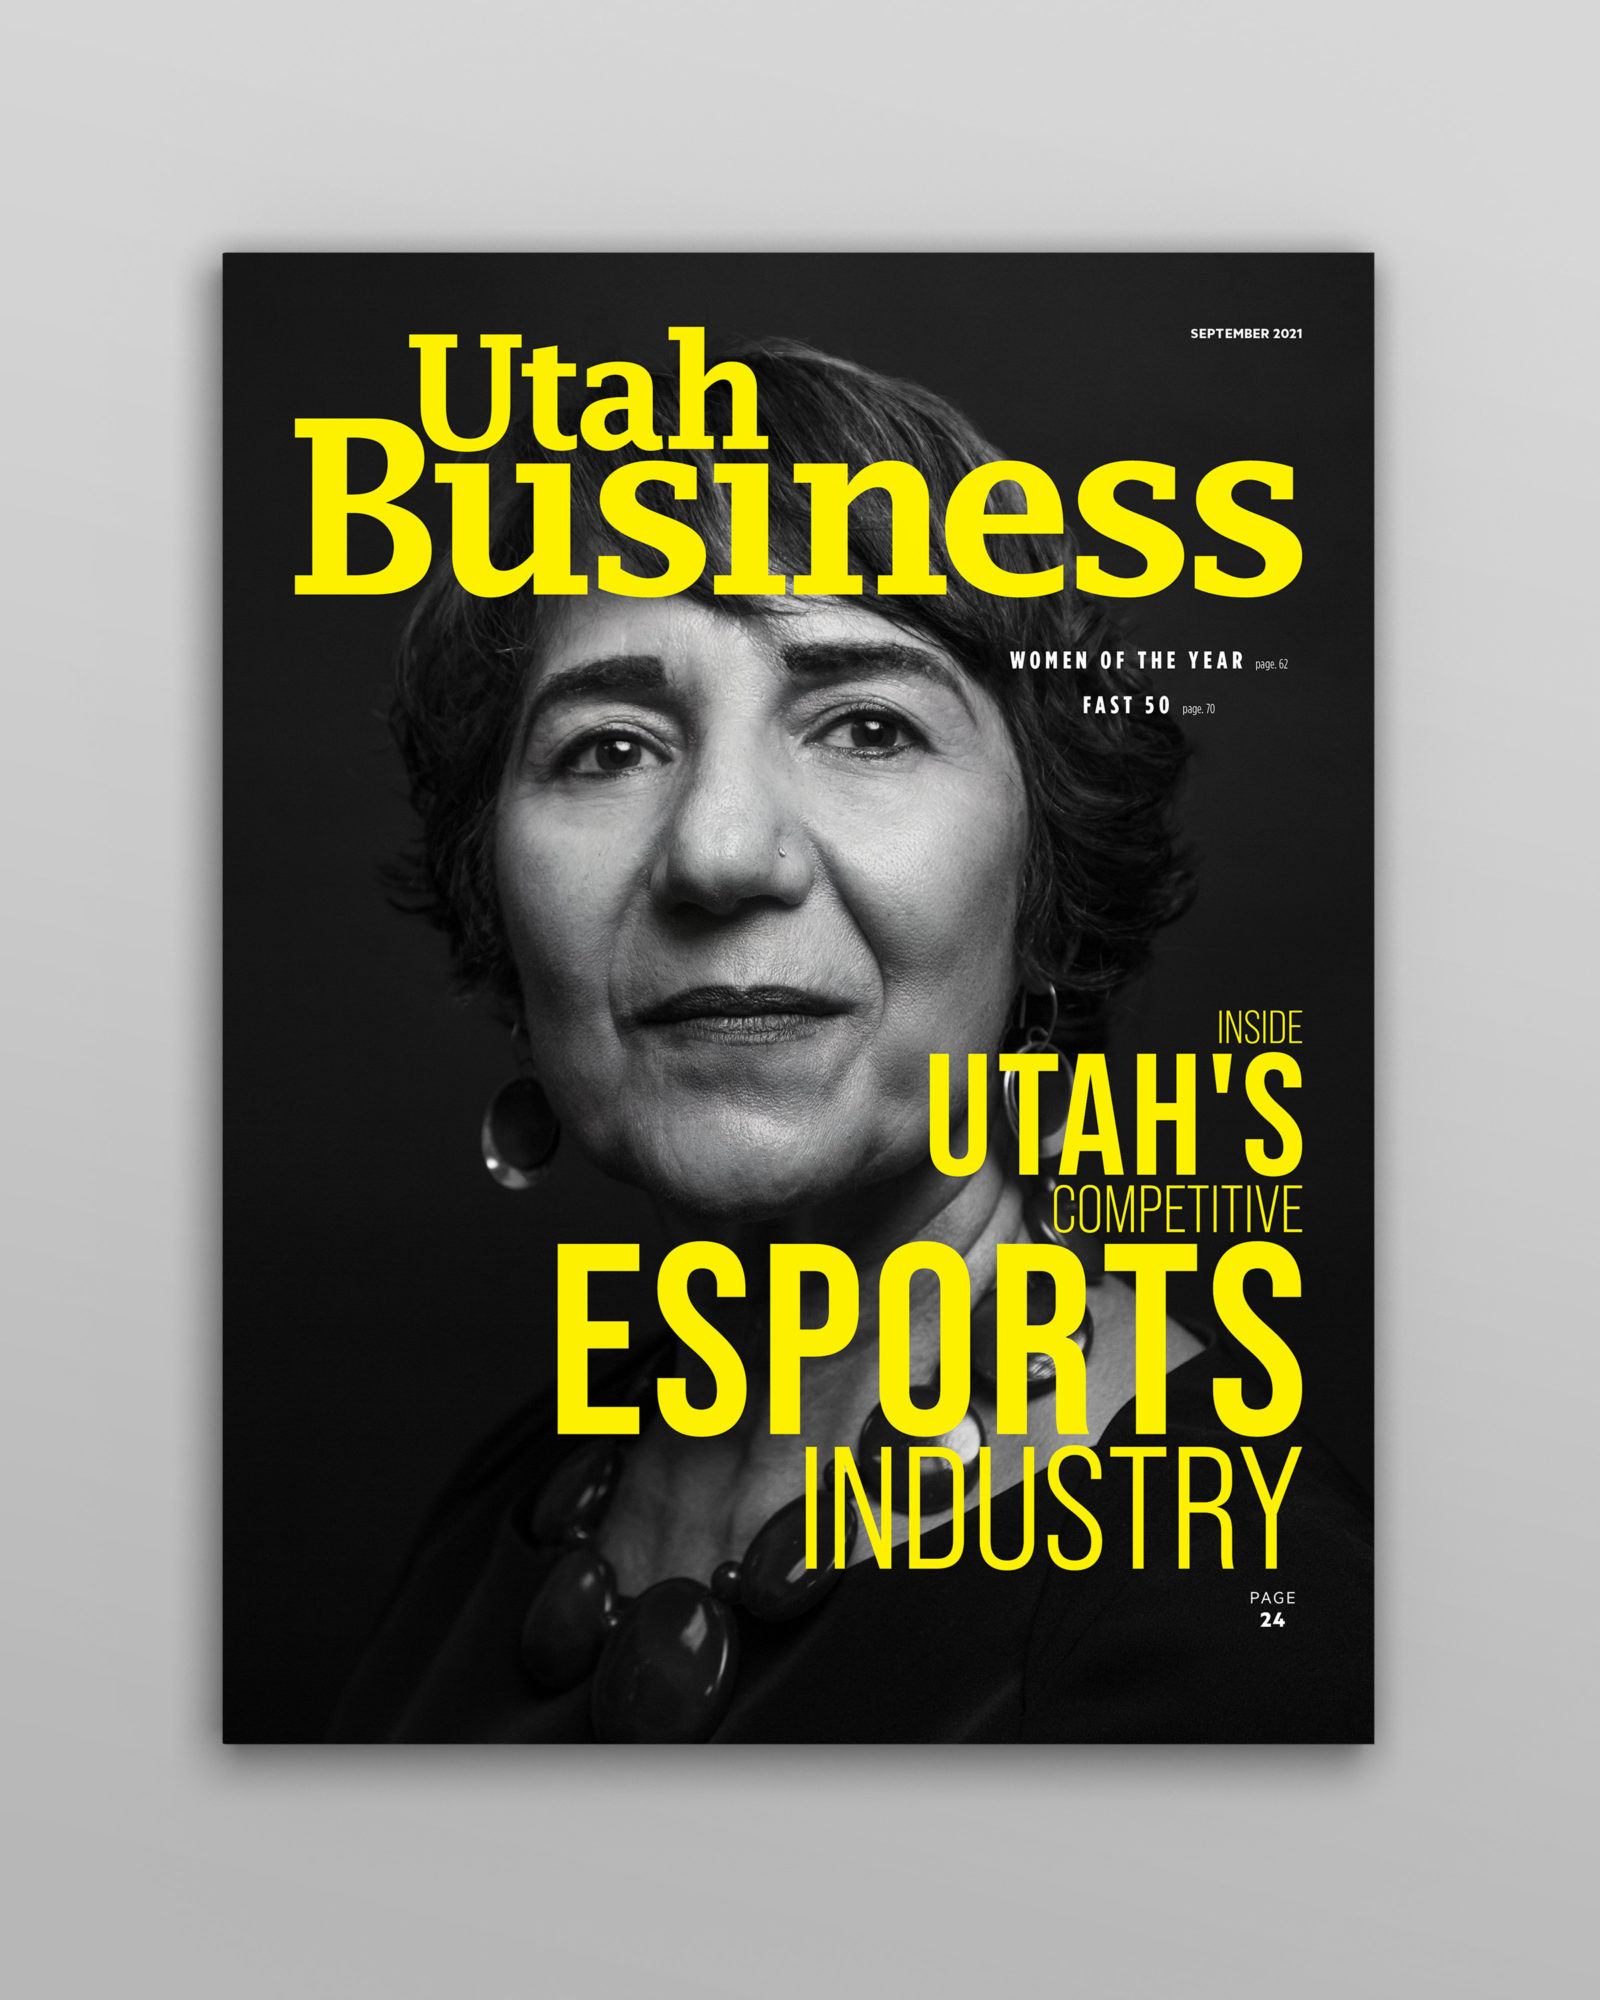 The Utah Business - September 2021 issue features the 2021 Women of the Year honorees and an inside look at Utah's eSports industry.